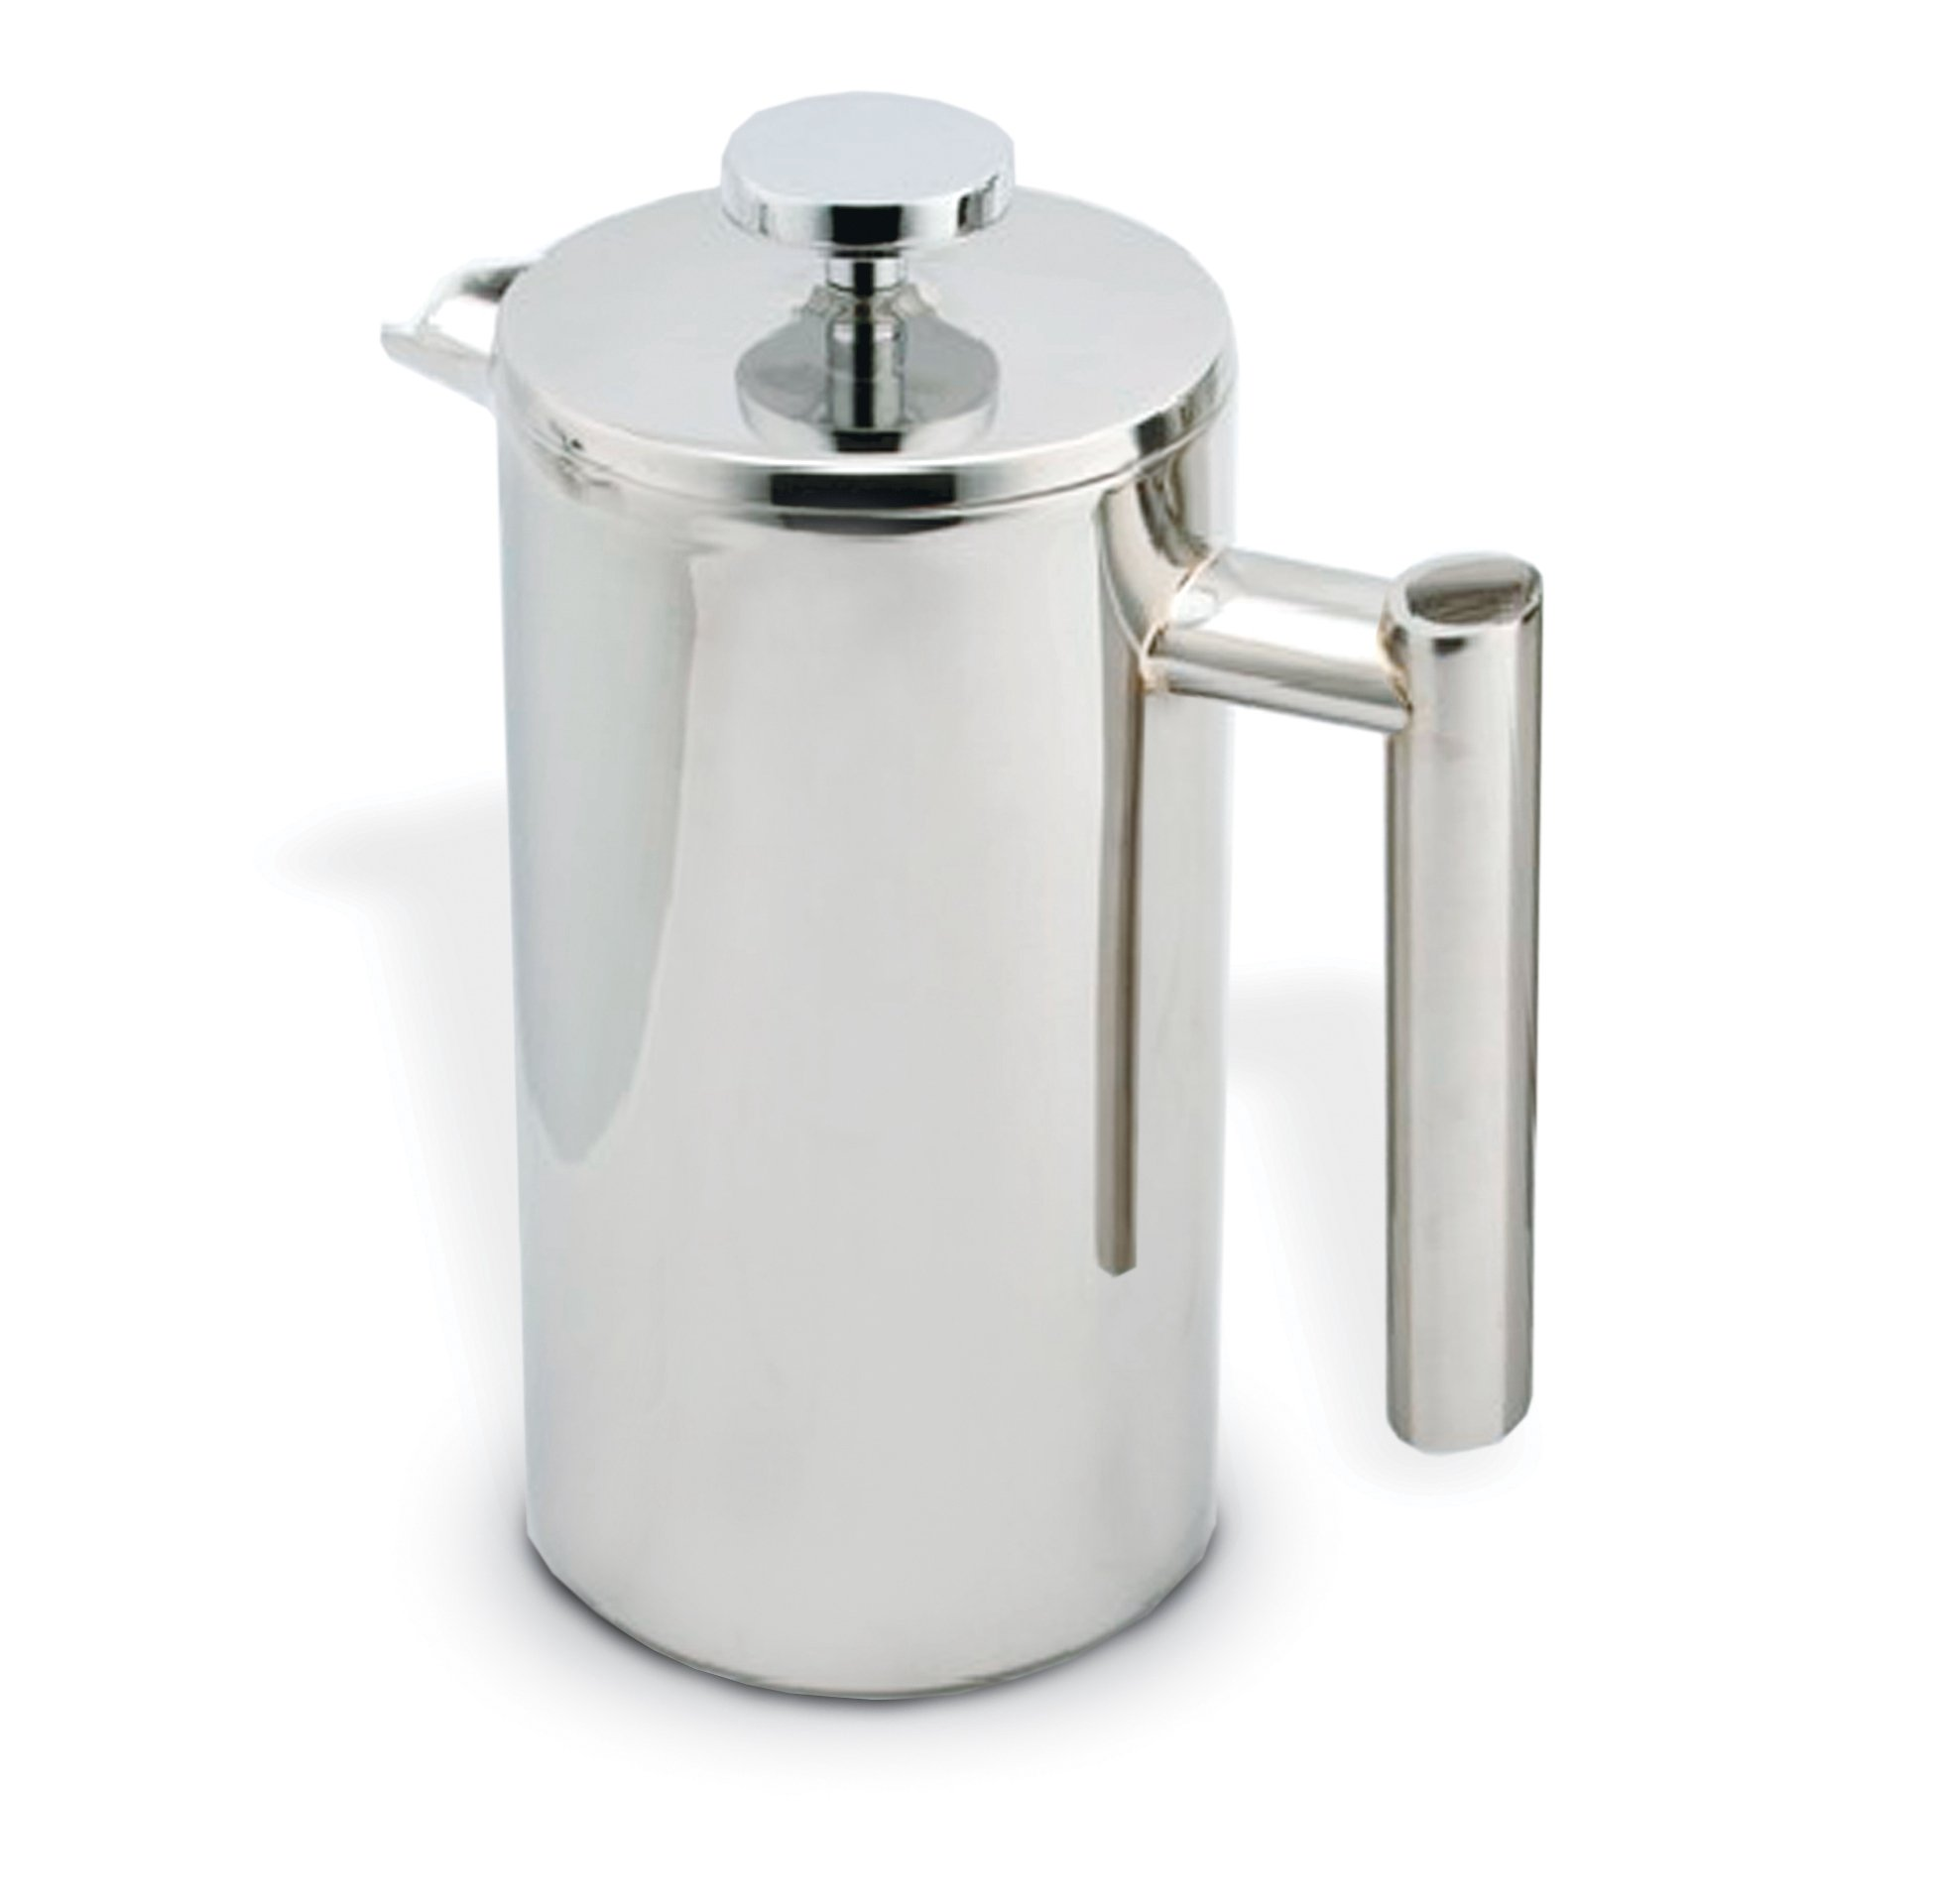 Cuisinox Double Walled French Press, 800ml by Cuisinox